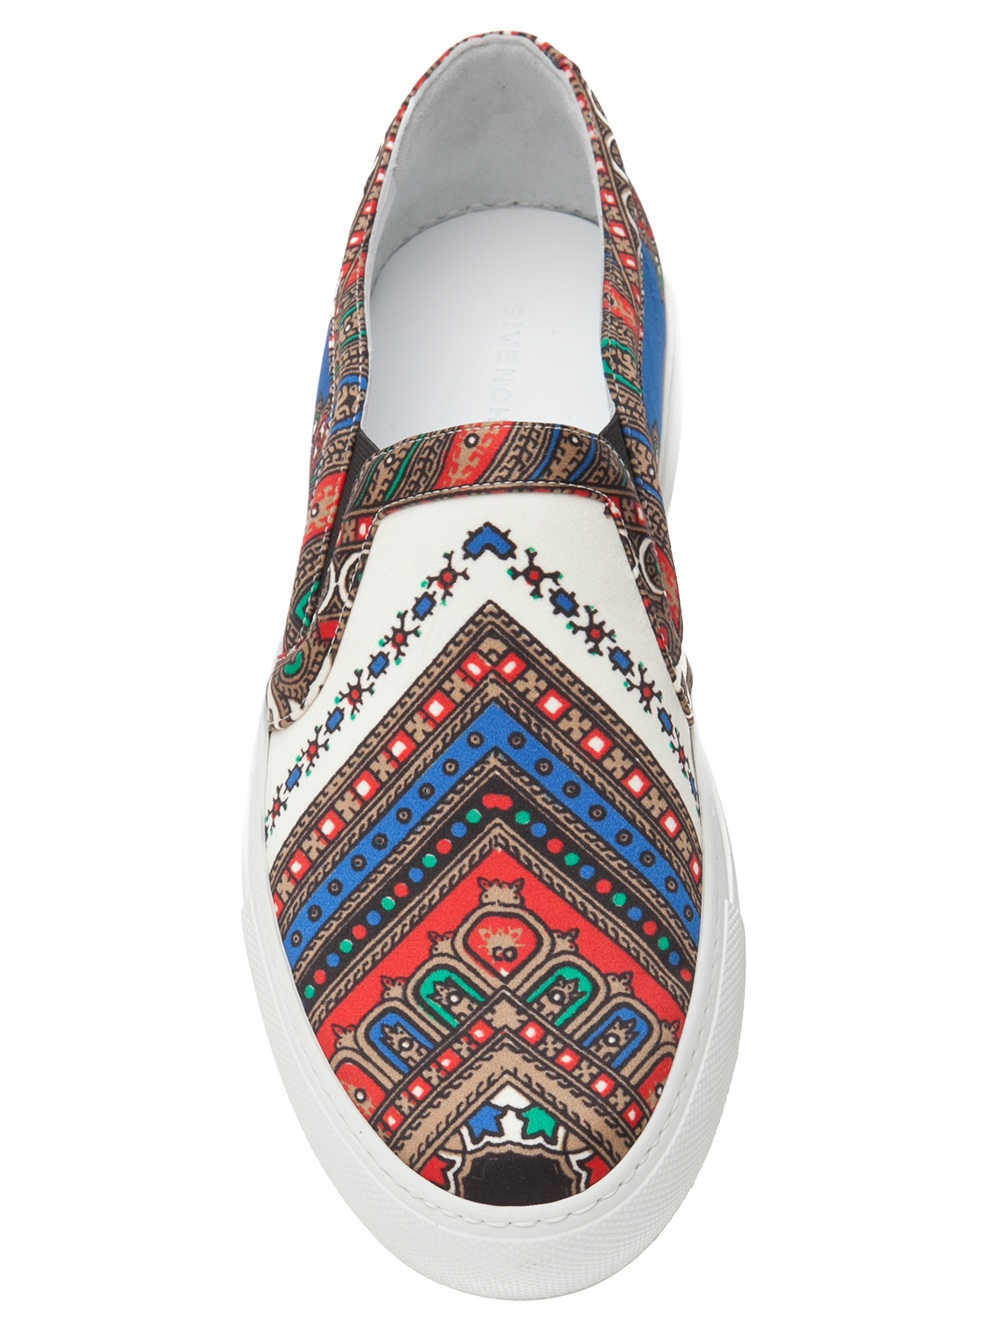 Givenchy Paisley Print Sneaker - Lyst